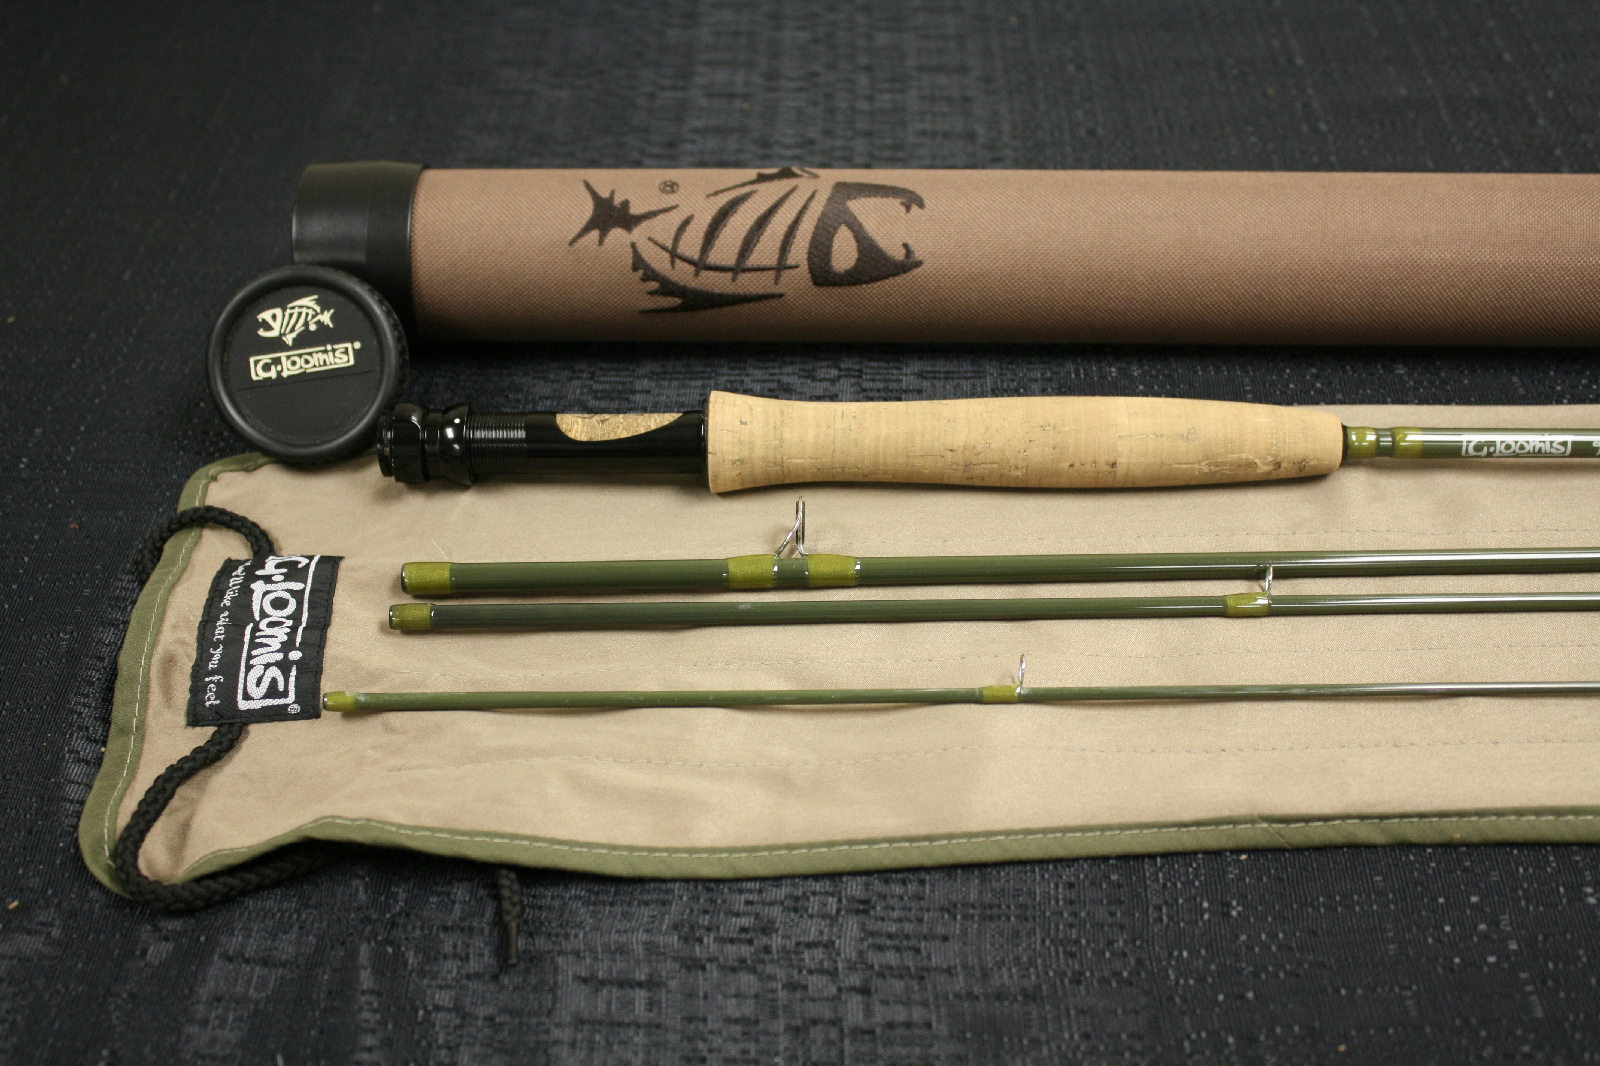 Gloomis pro 4x 1084 4 fly rod used excellent w tube for Fishing rod socks